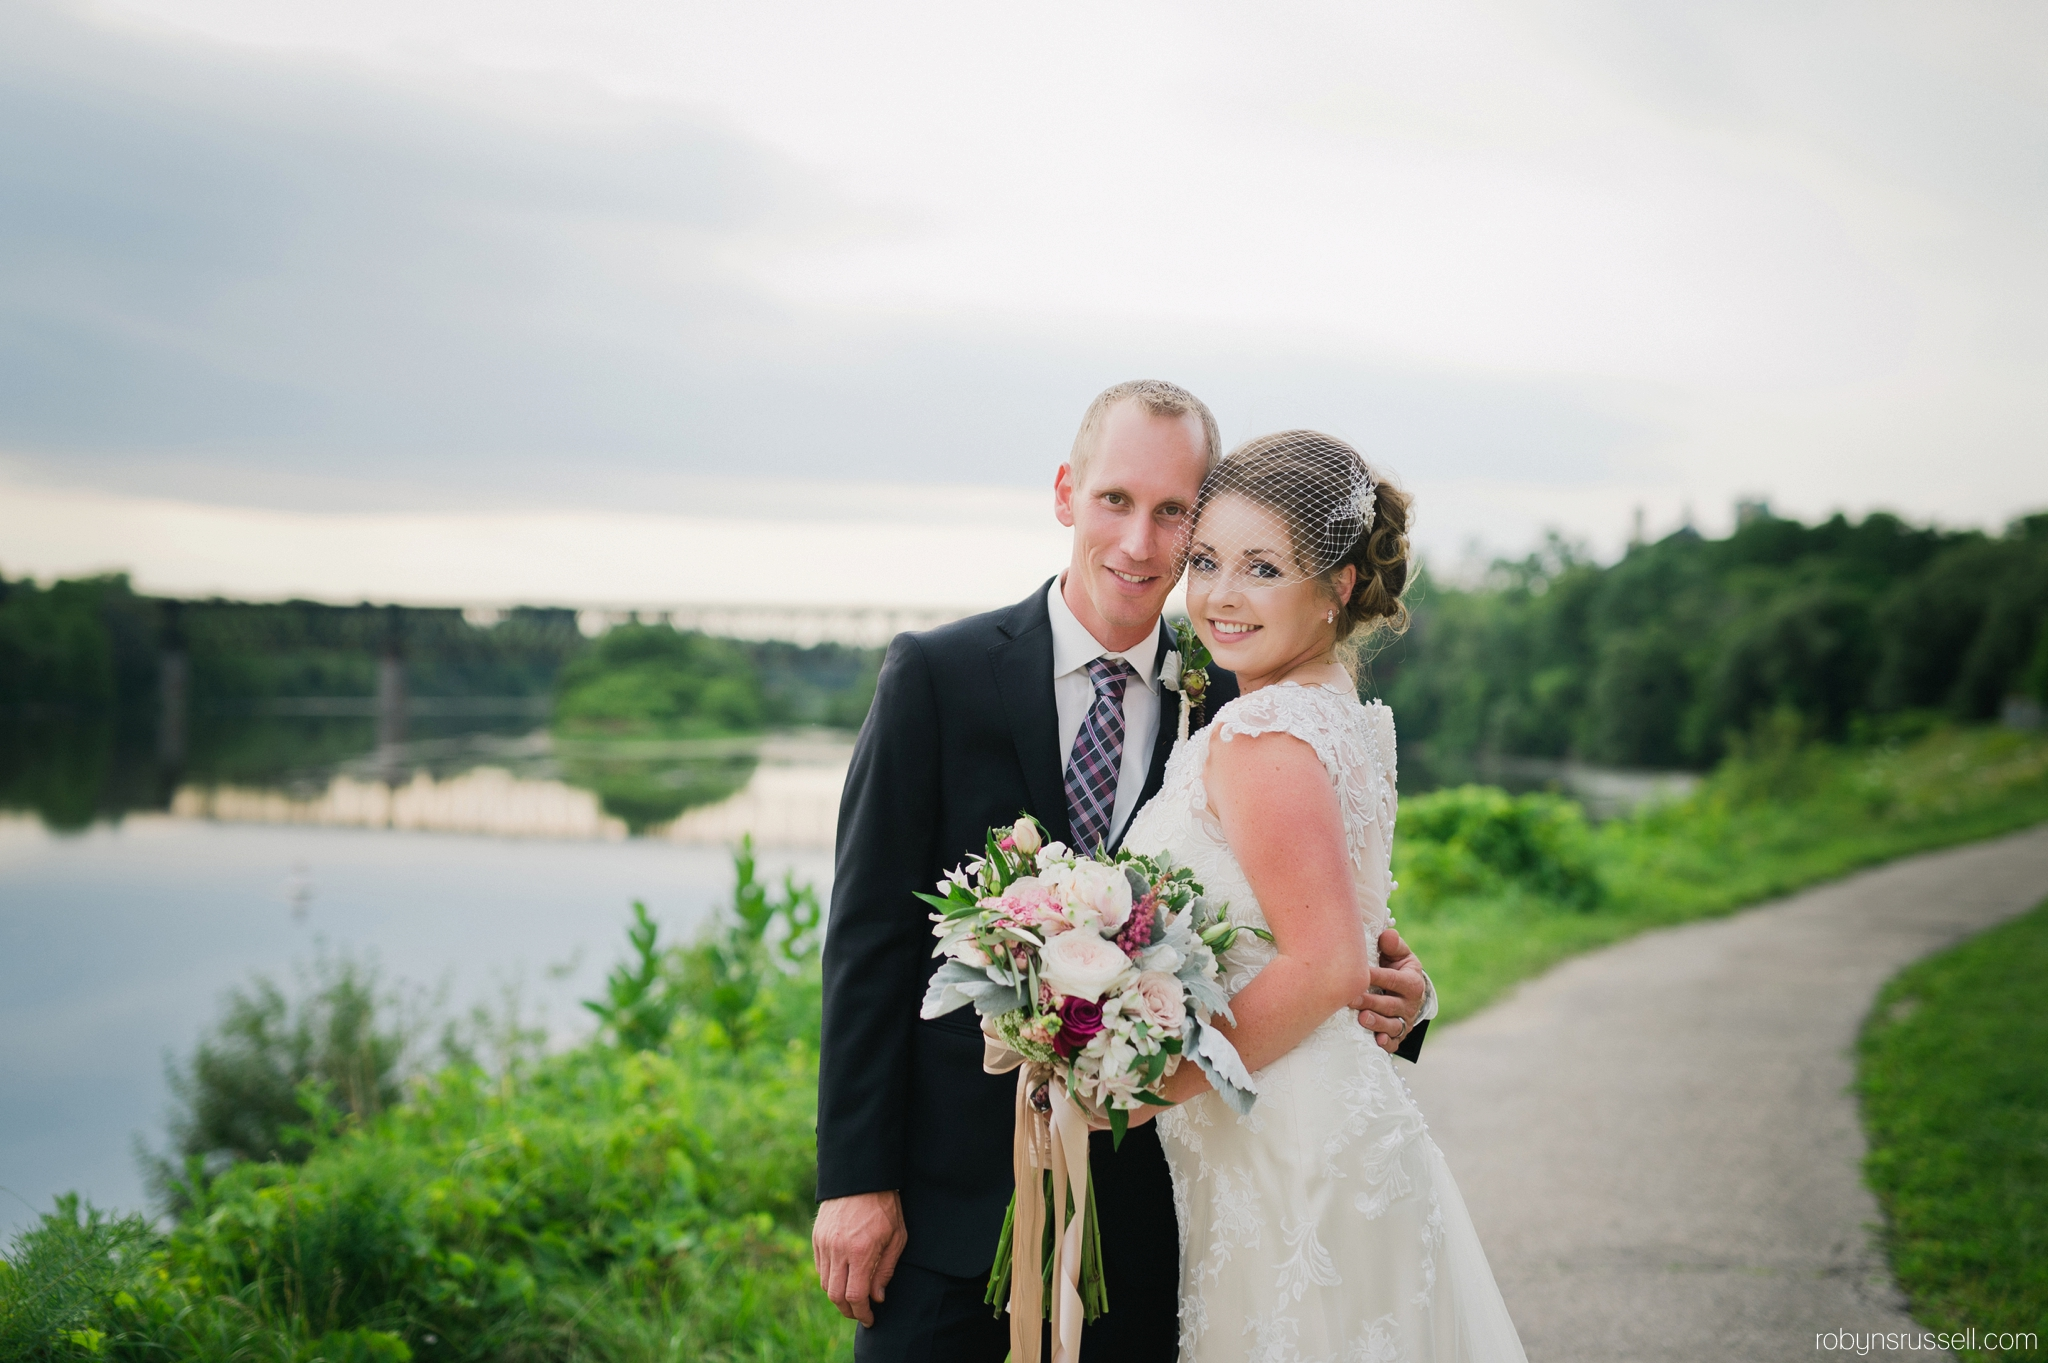 37-beautiful-bride-and-groom-cambridge-mill-beautiful-view.jpg